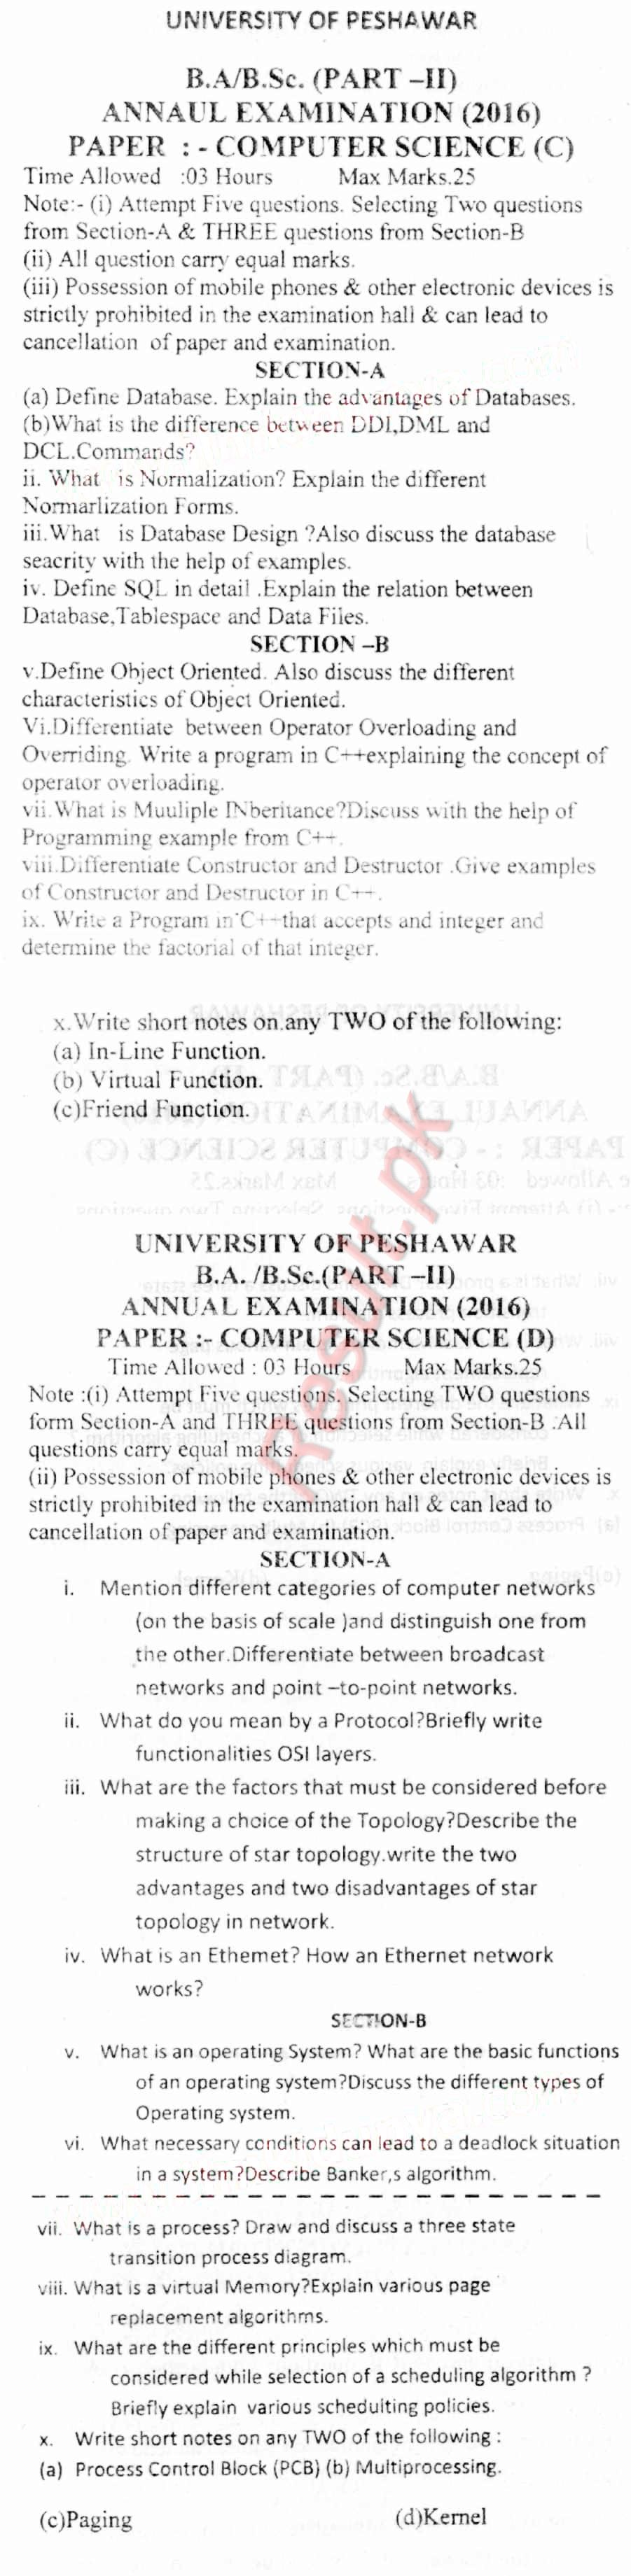 University of Peshawar Past Papers 2018, 2017, 2016, upesh Past